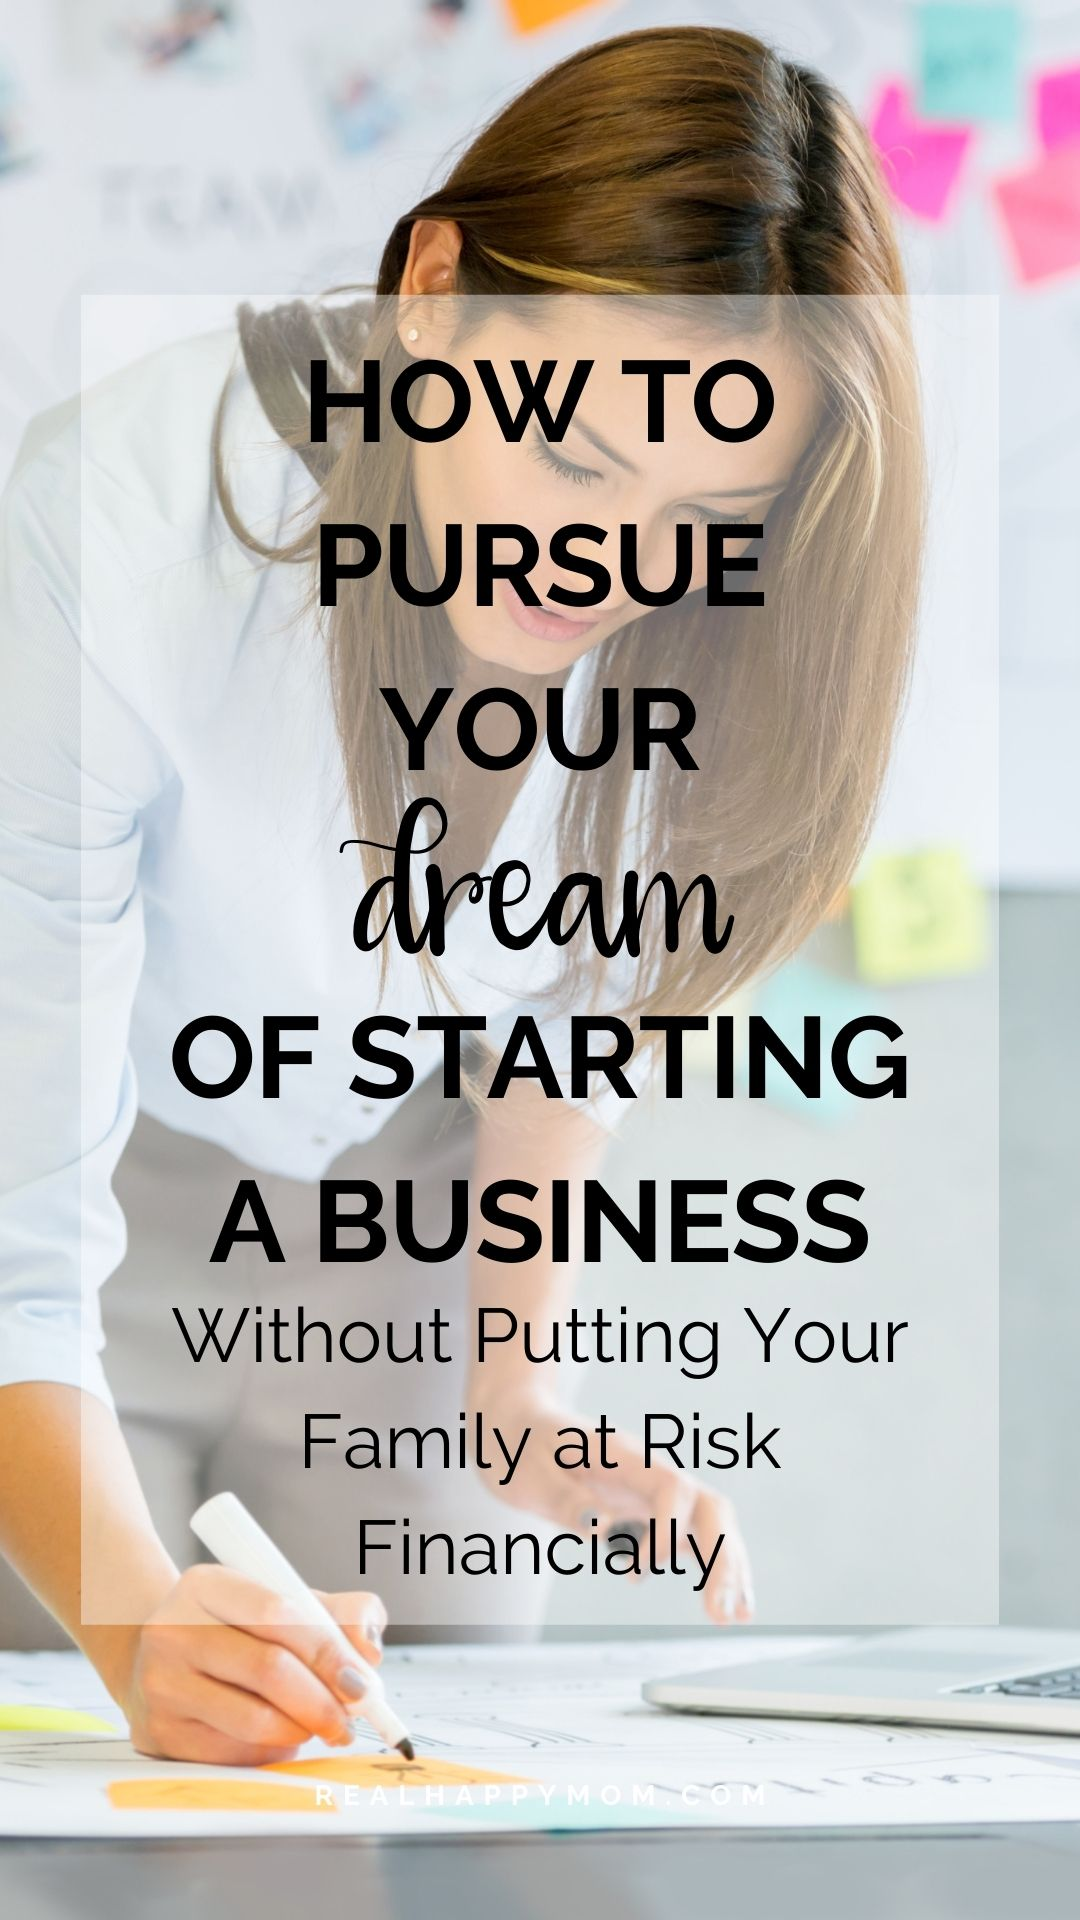 How to Pursue Your Dream of Starting a Business, Without Putting Your Family at Risk Financially